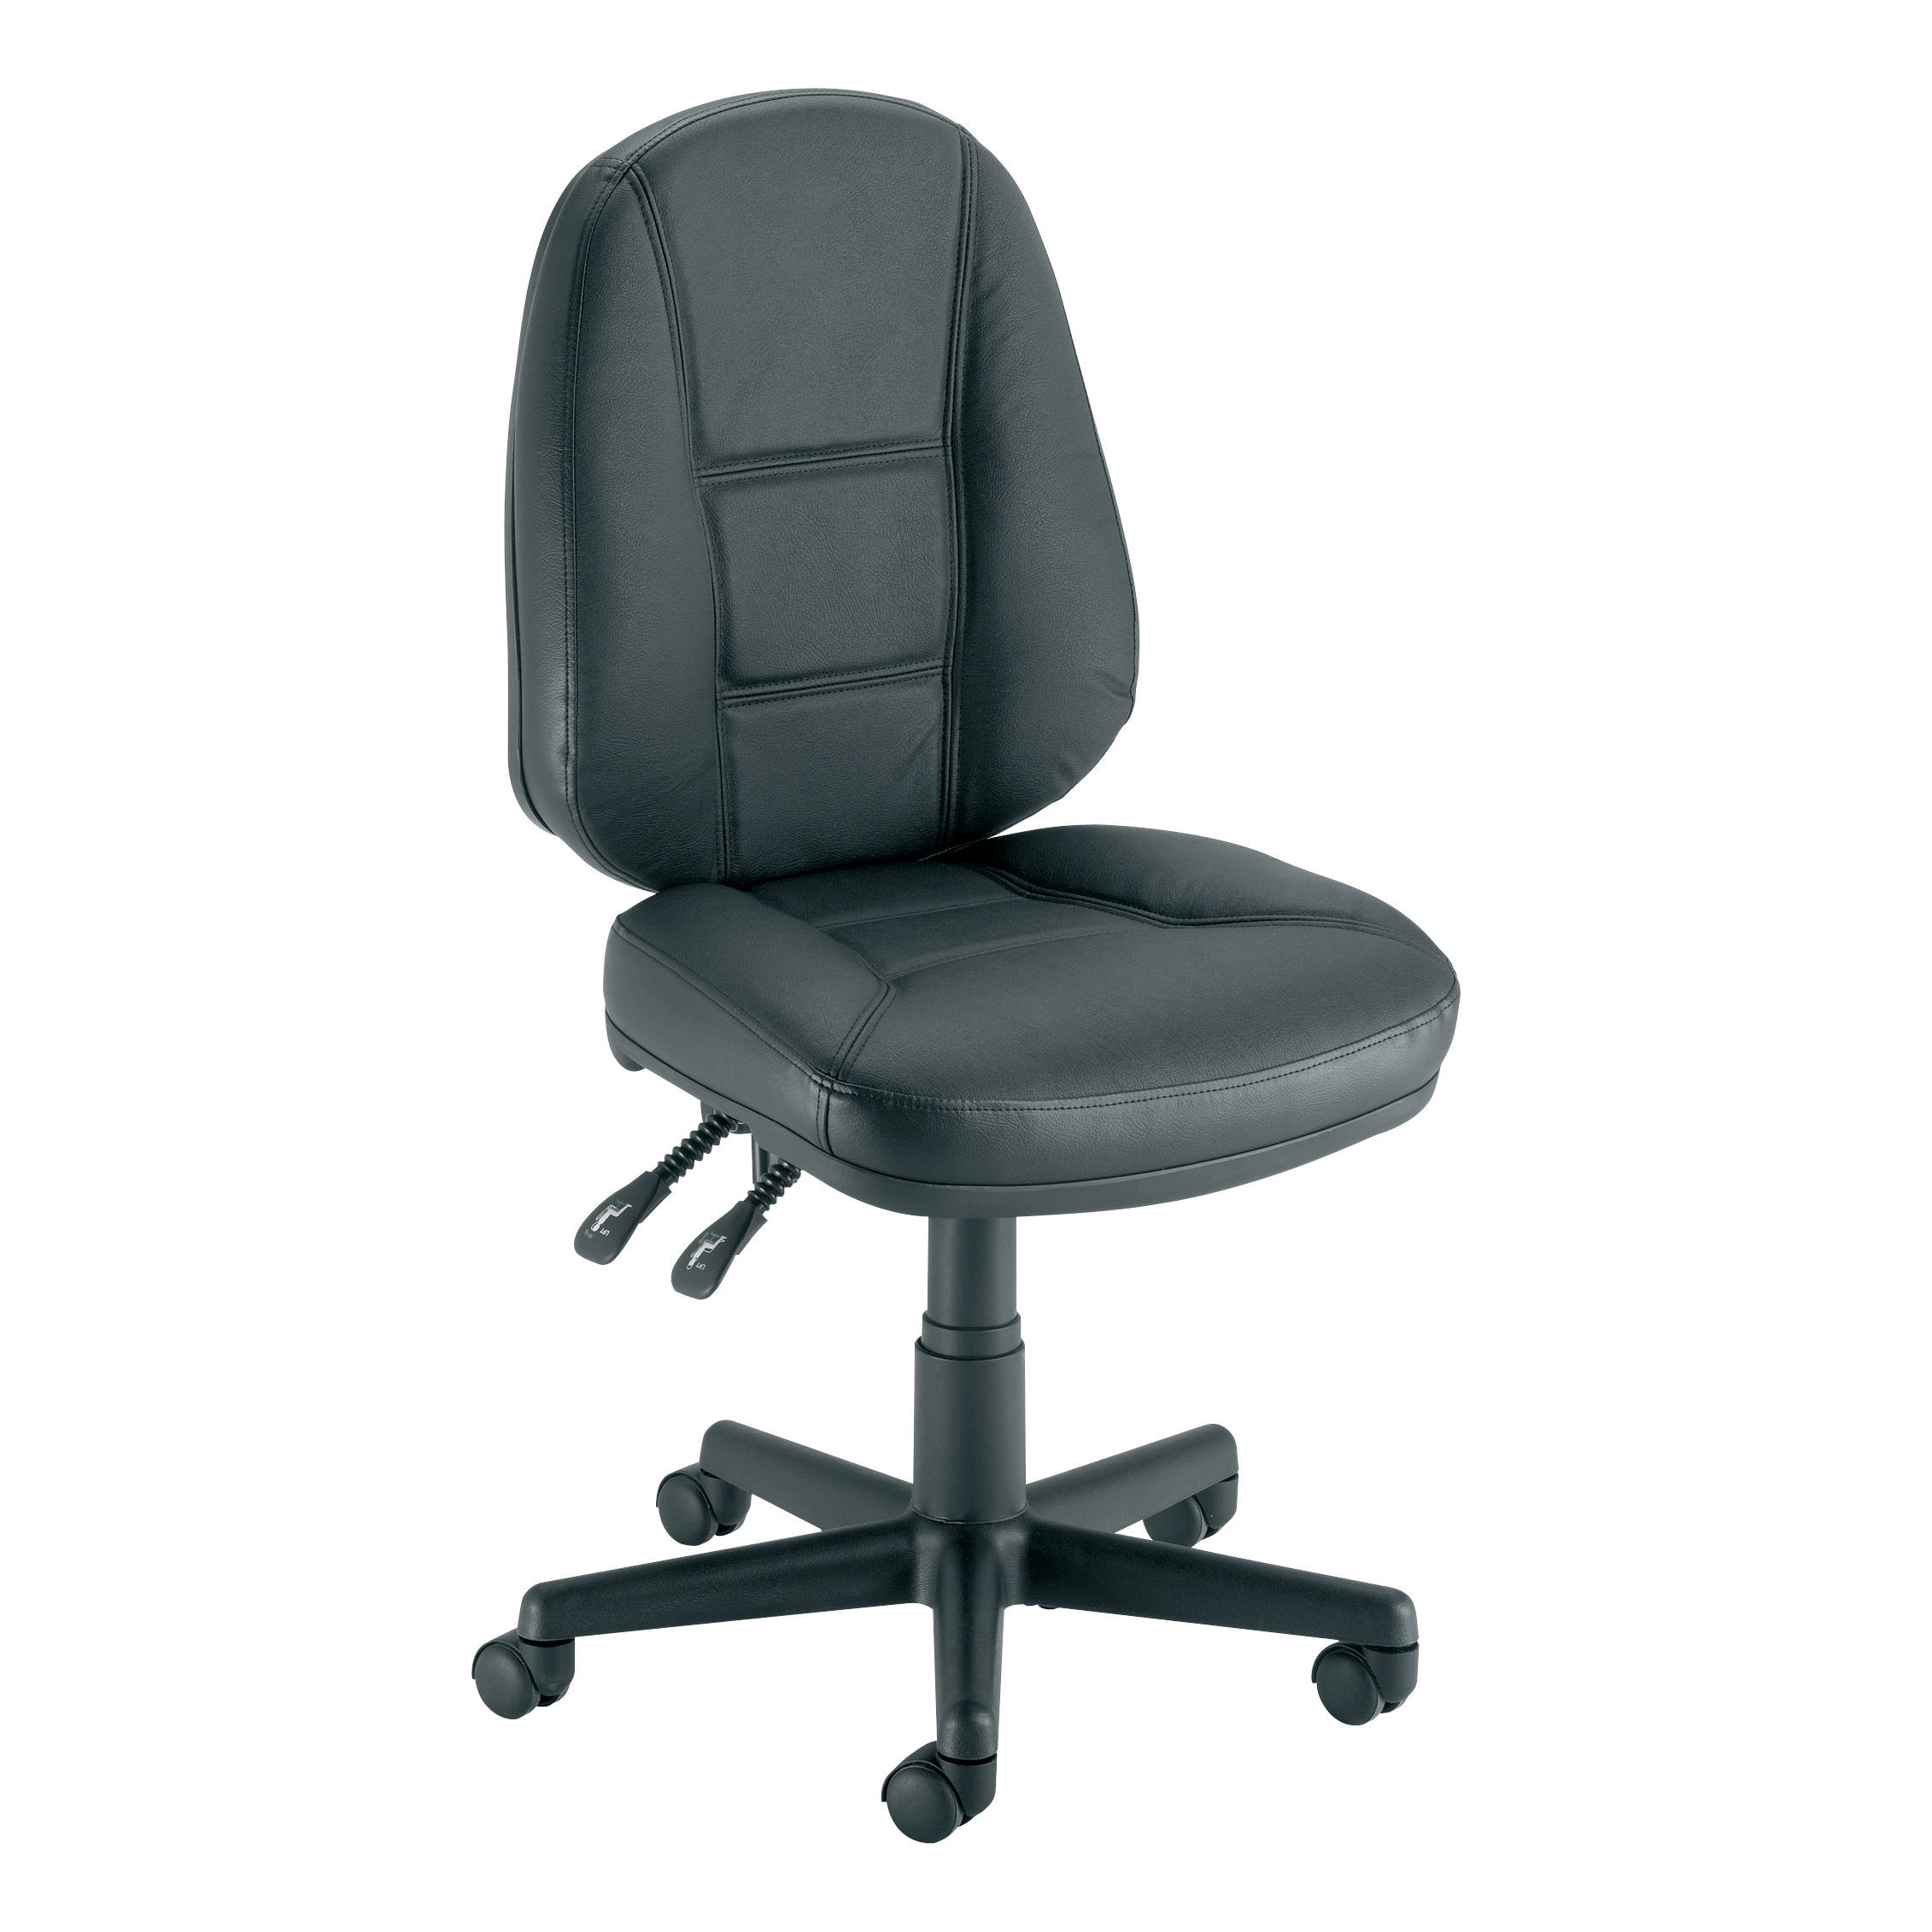 Trexus Intro Leather High Back Permanent Contact Operators Chair 490x450x440-560mm Ref ST204 3LEVER